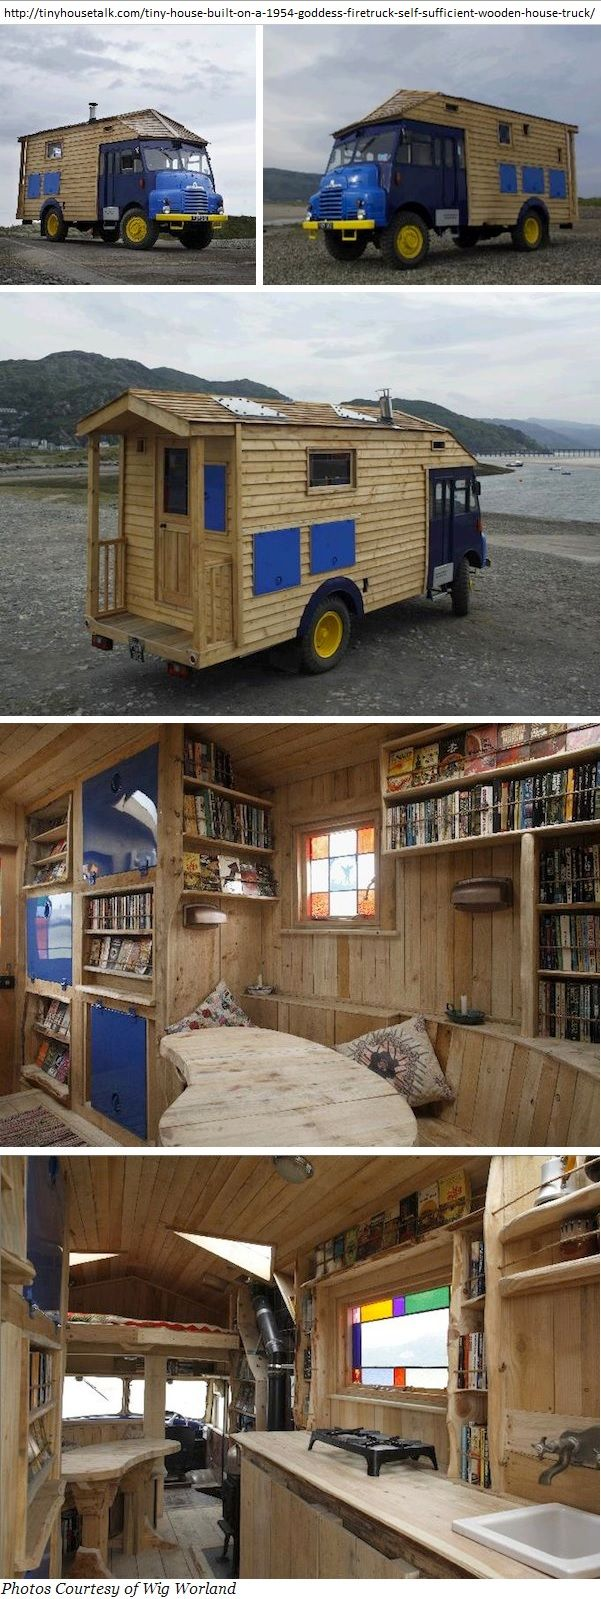 heather and ivan morison tales of space and time - wood house truck ~ Now there's an idea. I like this.